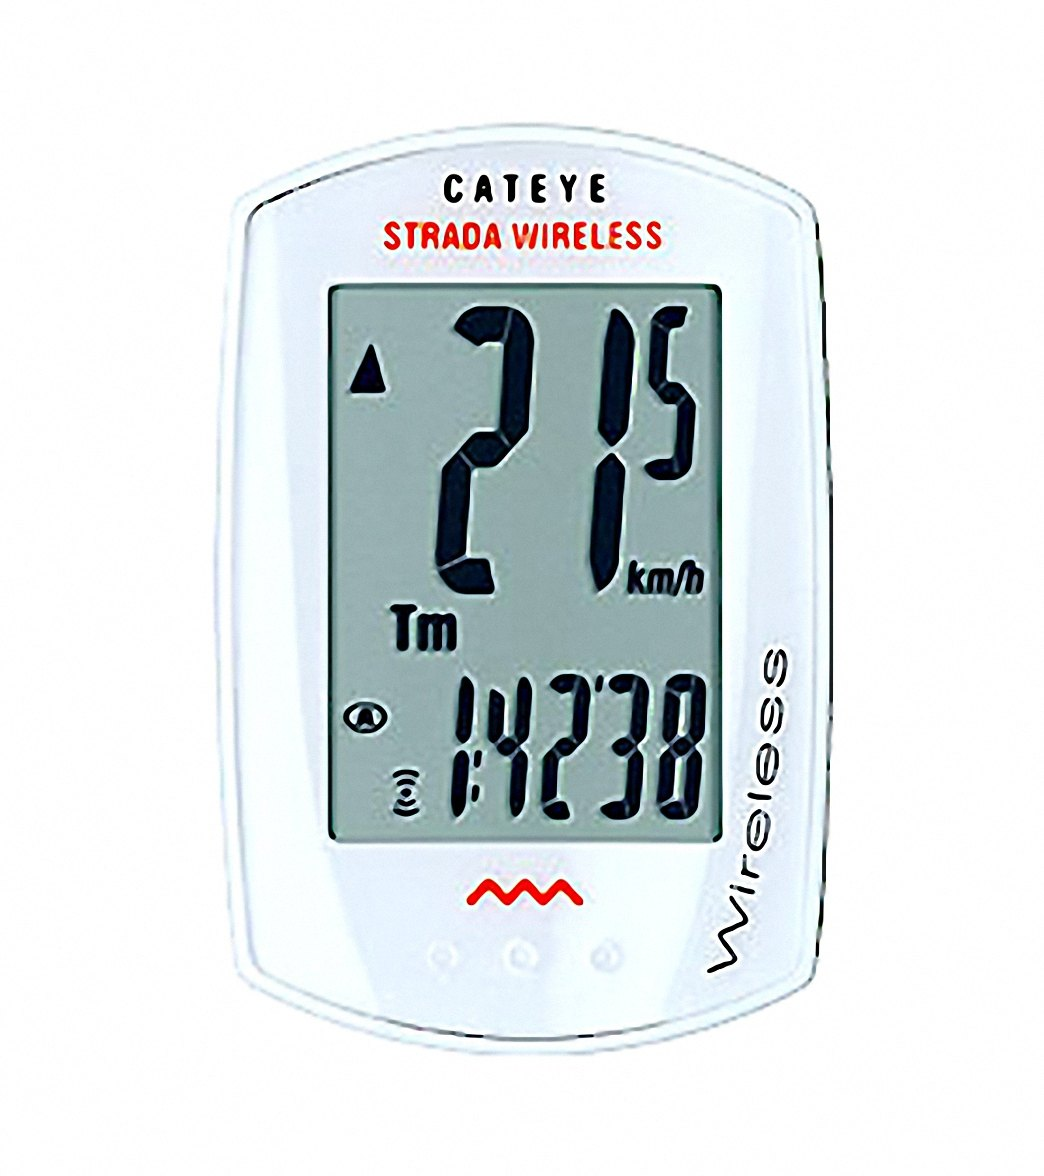 Cateye Strada Wireless Cc Rd300w Cycling Computer At Swimoutlet